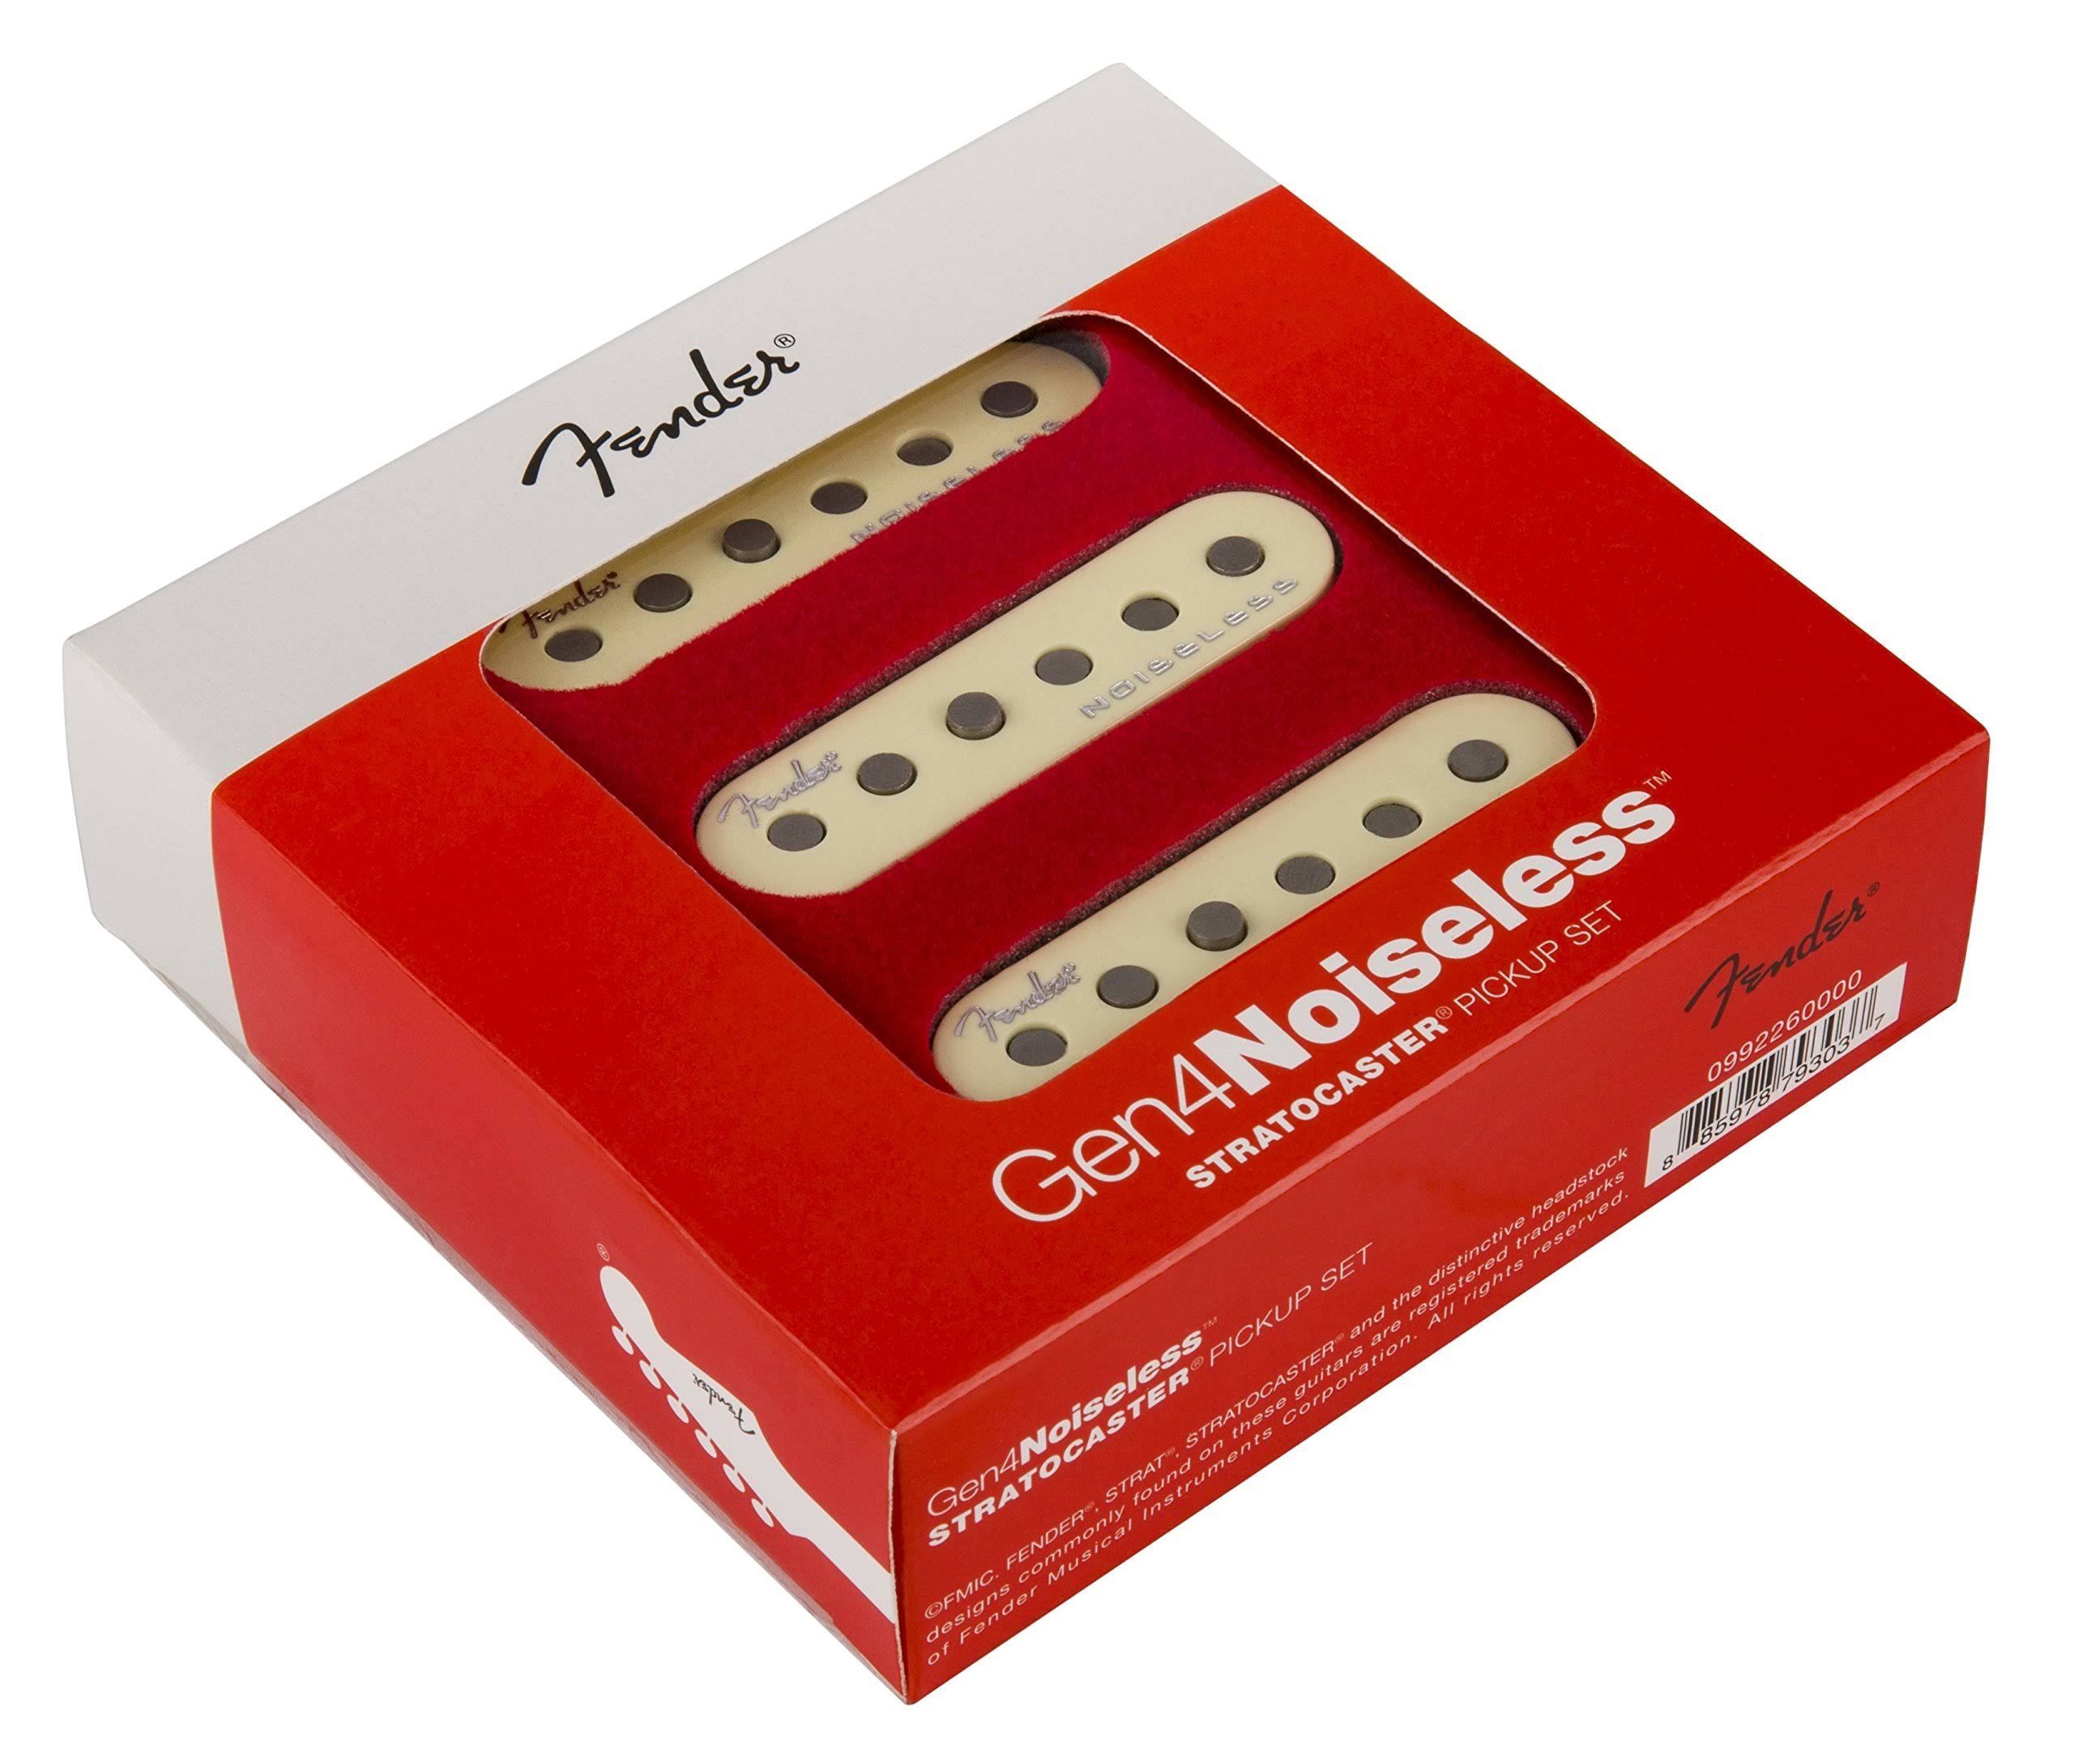 Fender Gen 4 Noiseless Stratocaster Pickups - Set Of 3, Aged White